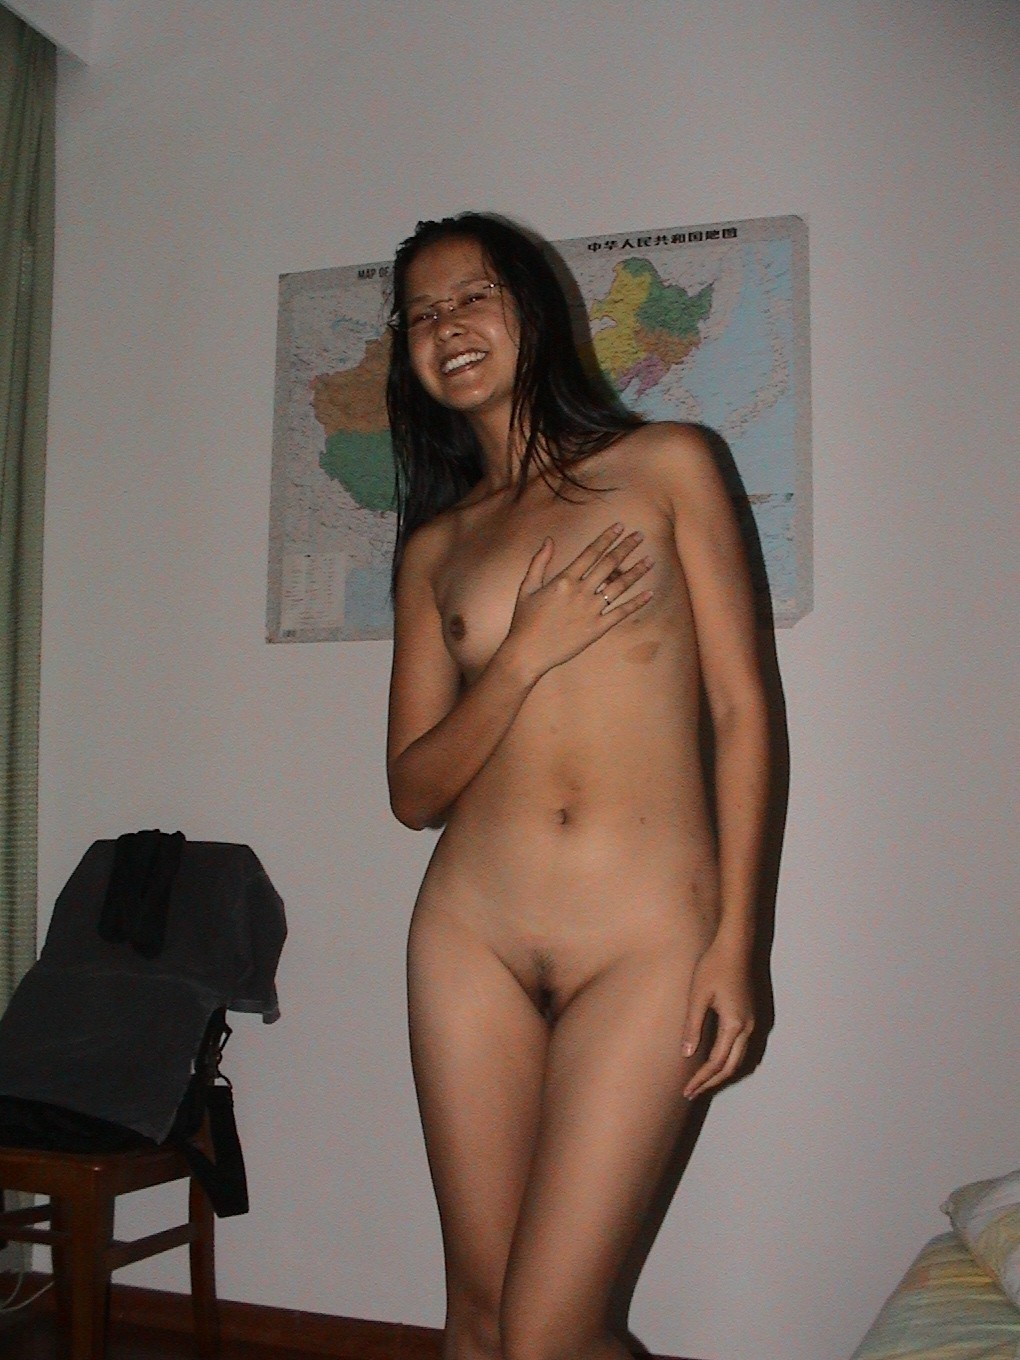 photos of nude college girls